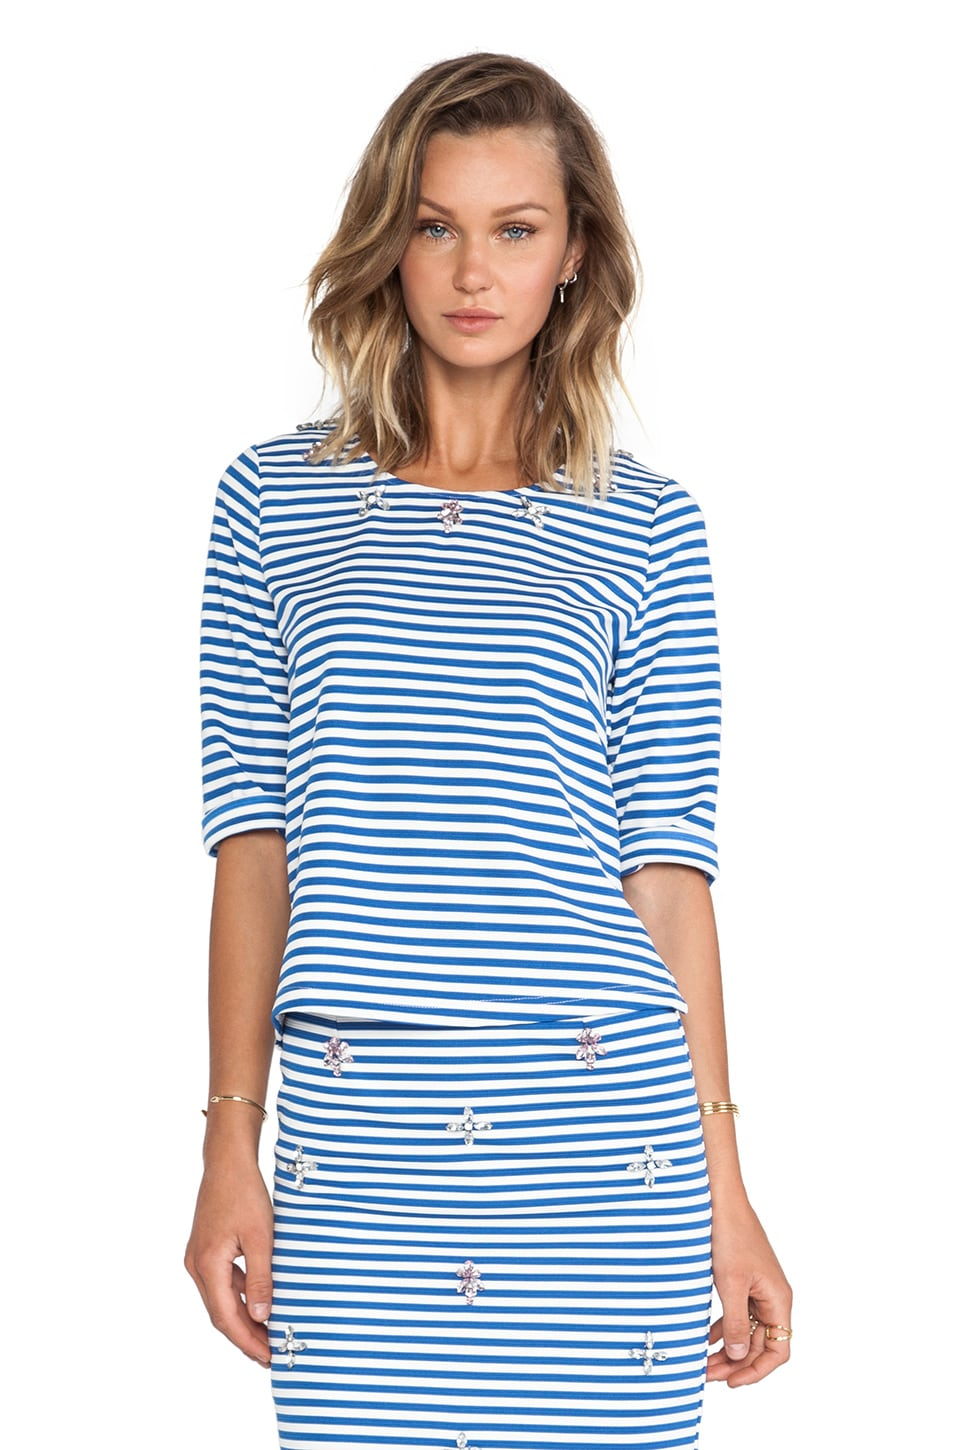 J.O.A. Embellished Top in Blue Striped